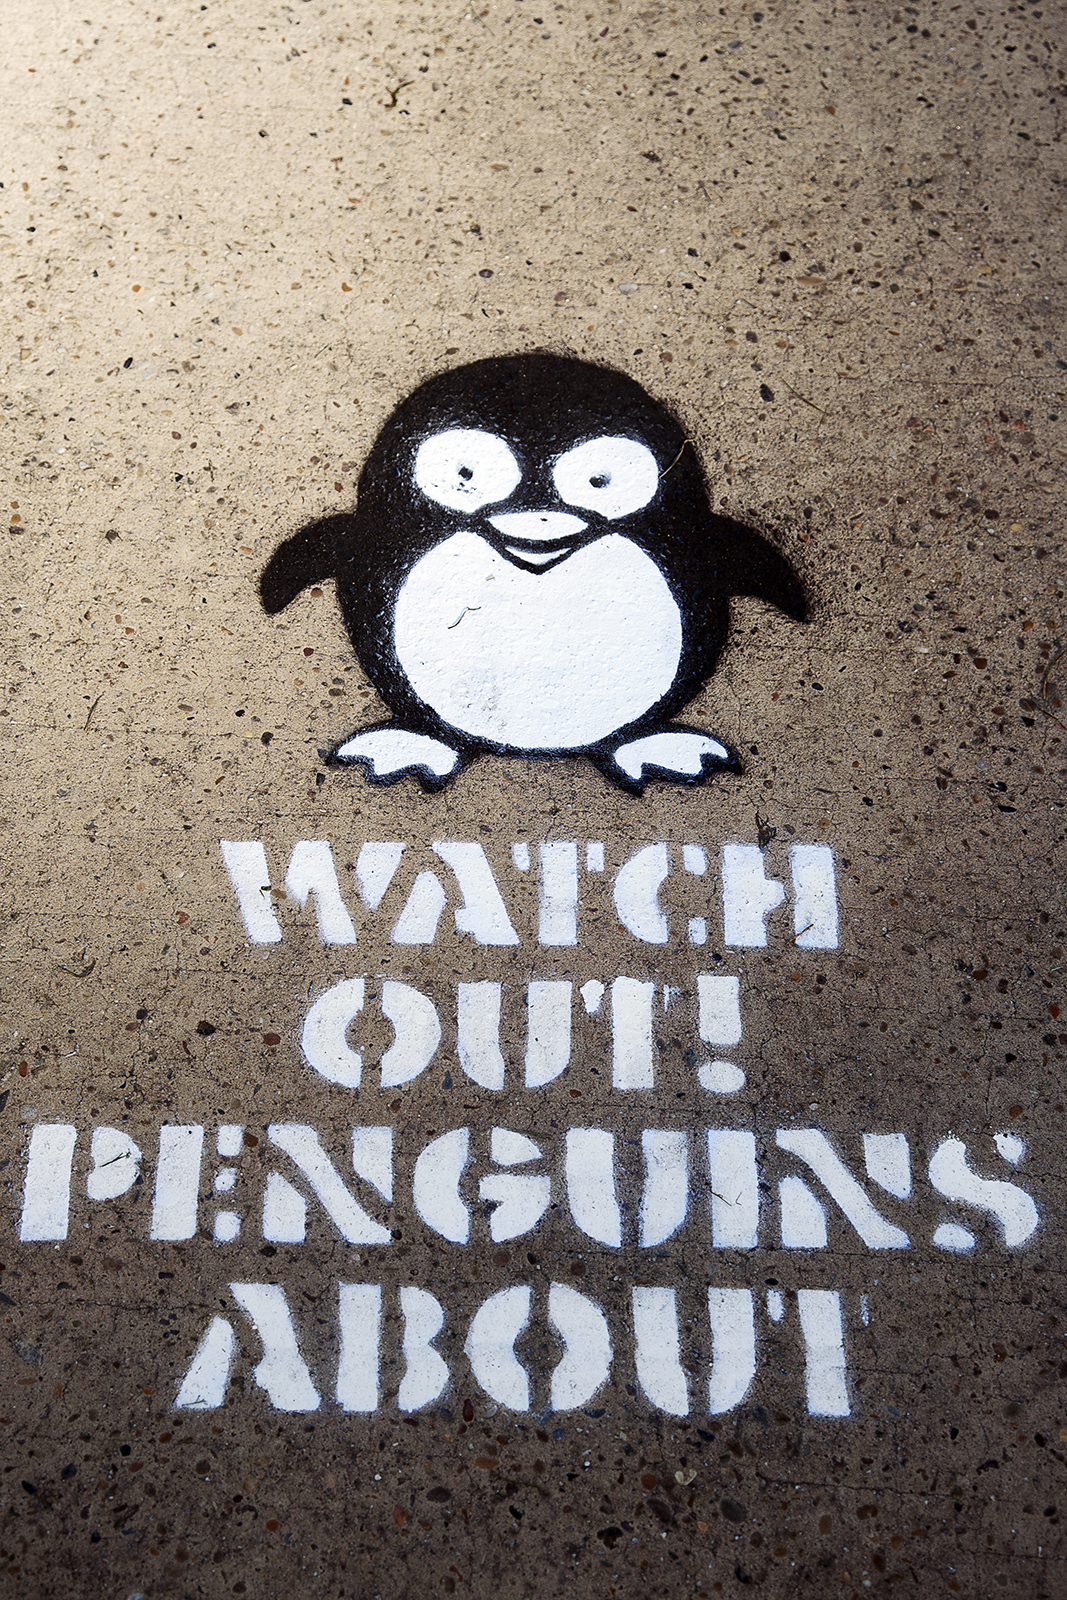 Watch out for penguins Sydney